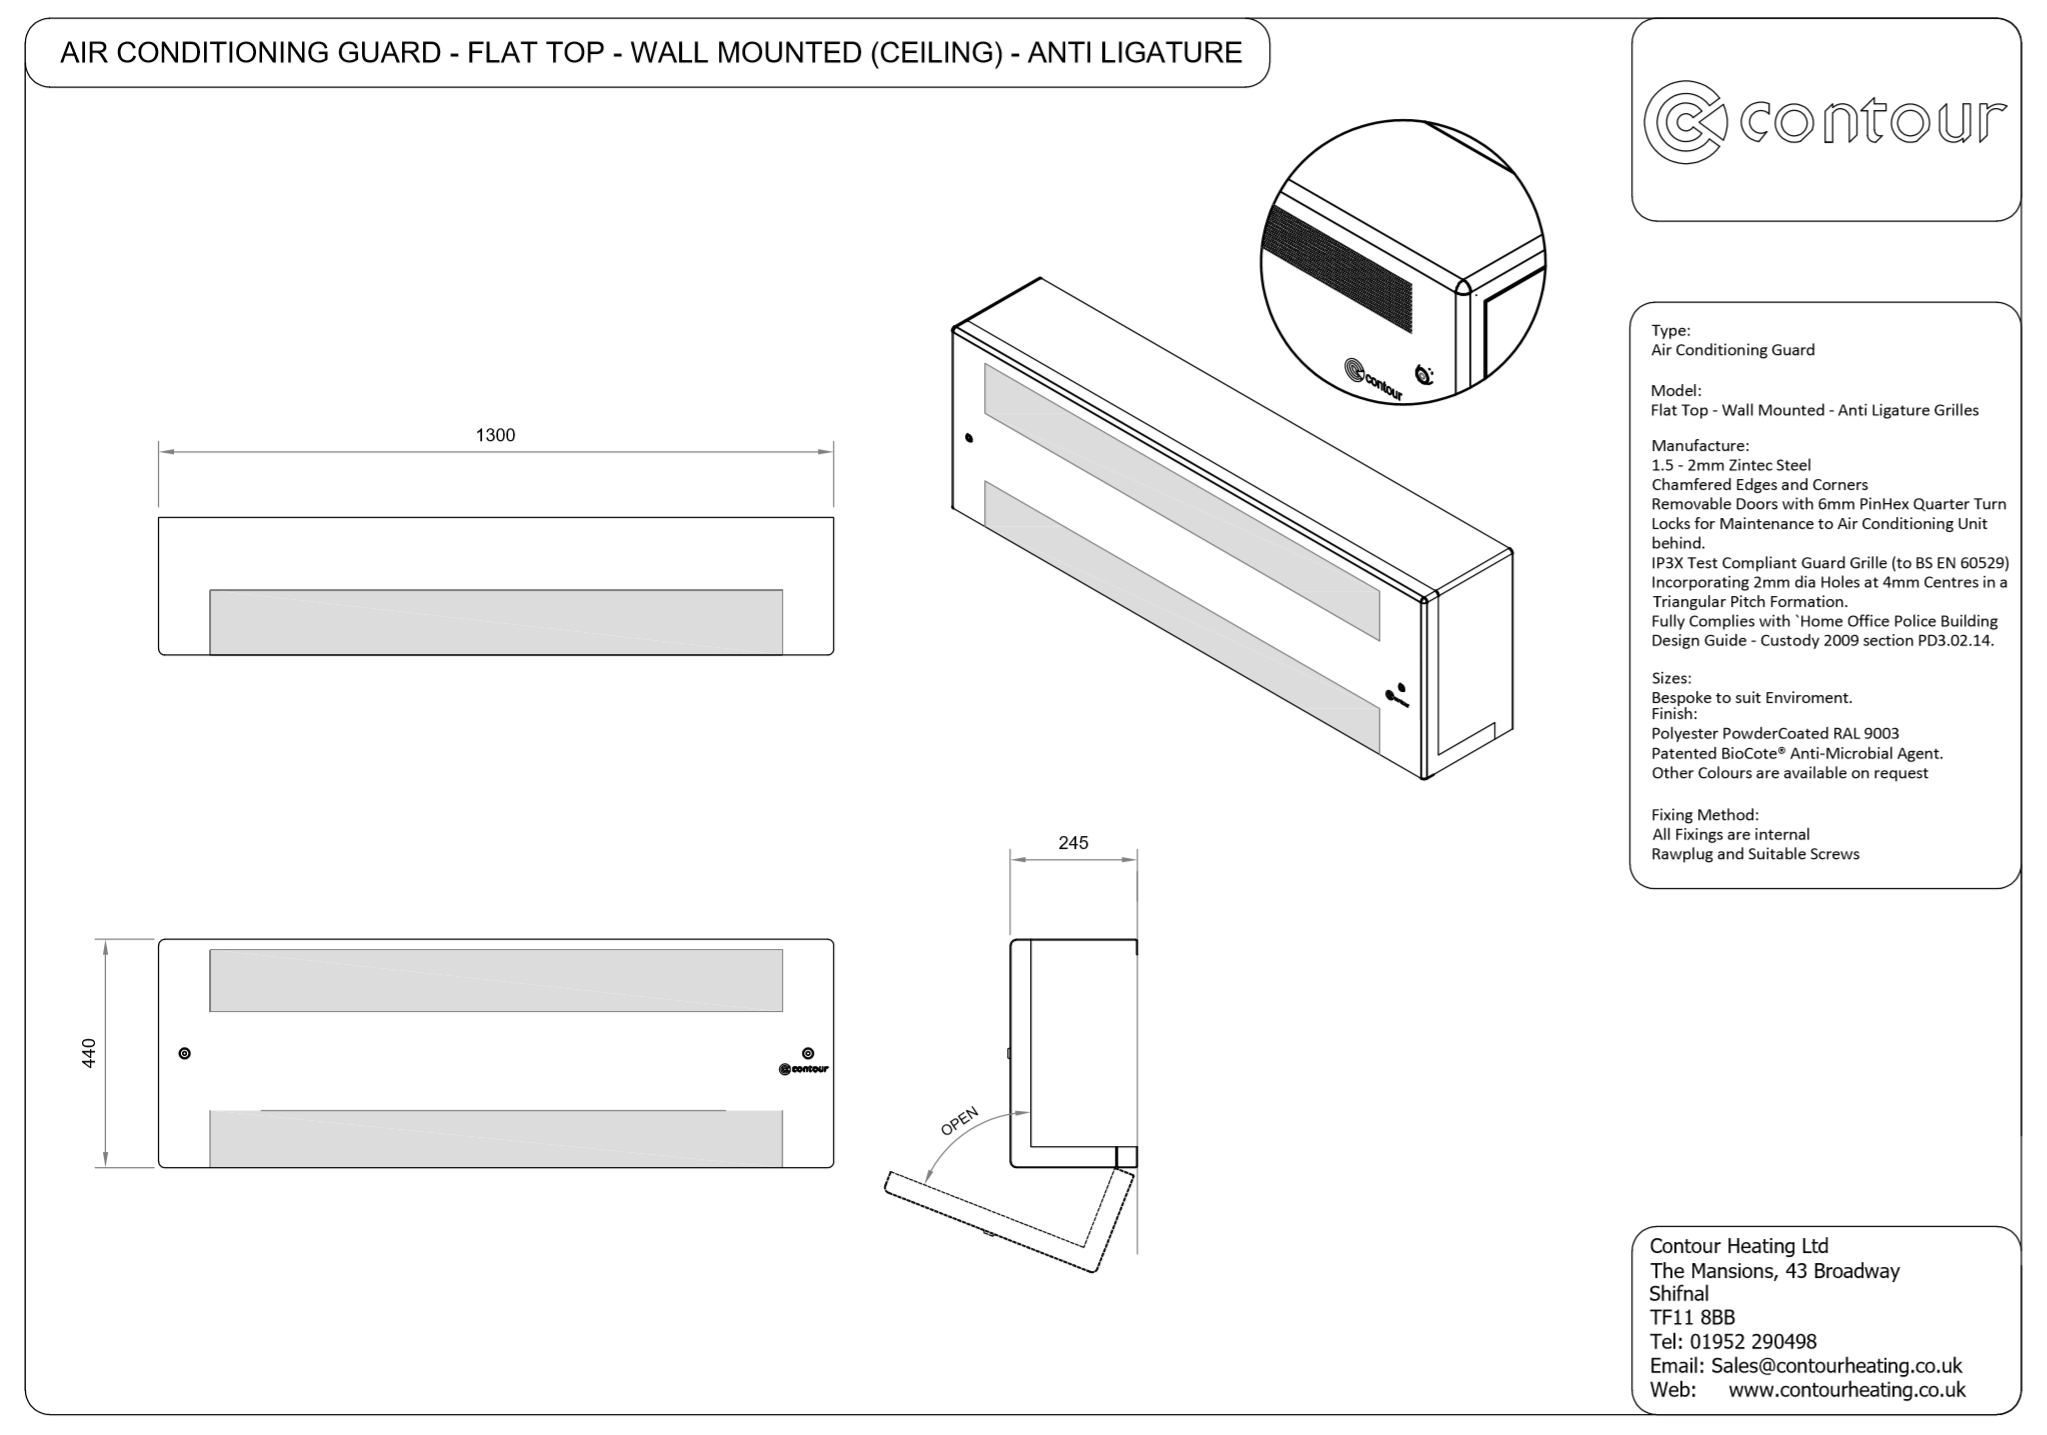 AIR CONDITIONING GUARD - FLAT TOP - WALL MOUNTED (CEILING) - ANTI LIGATURE